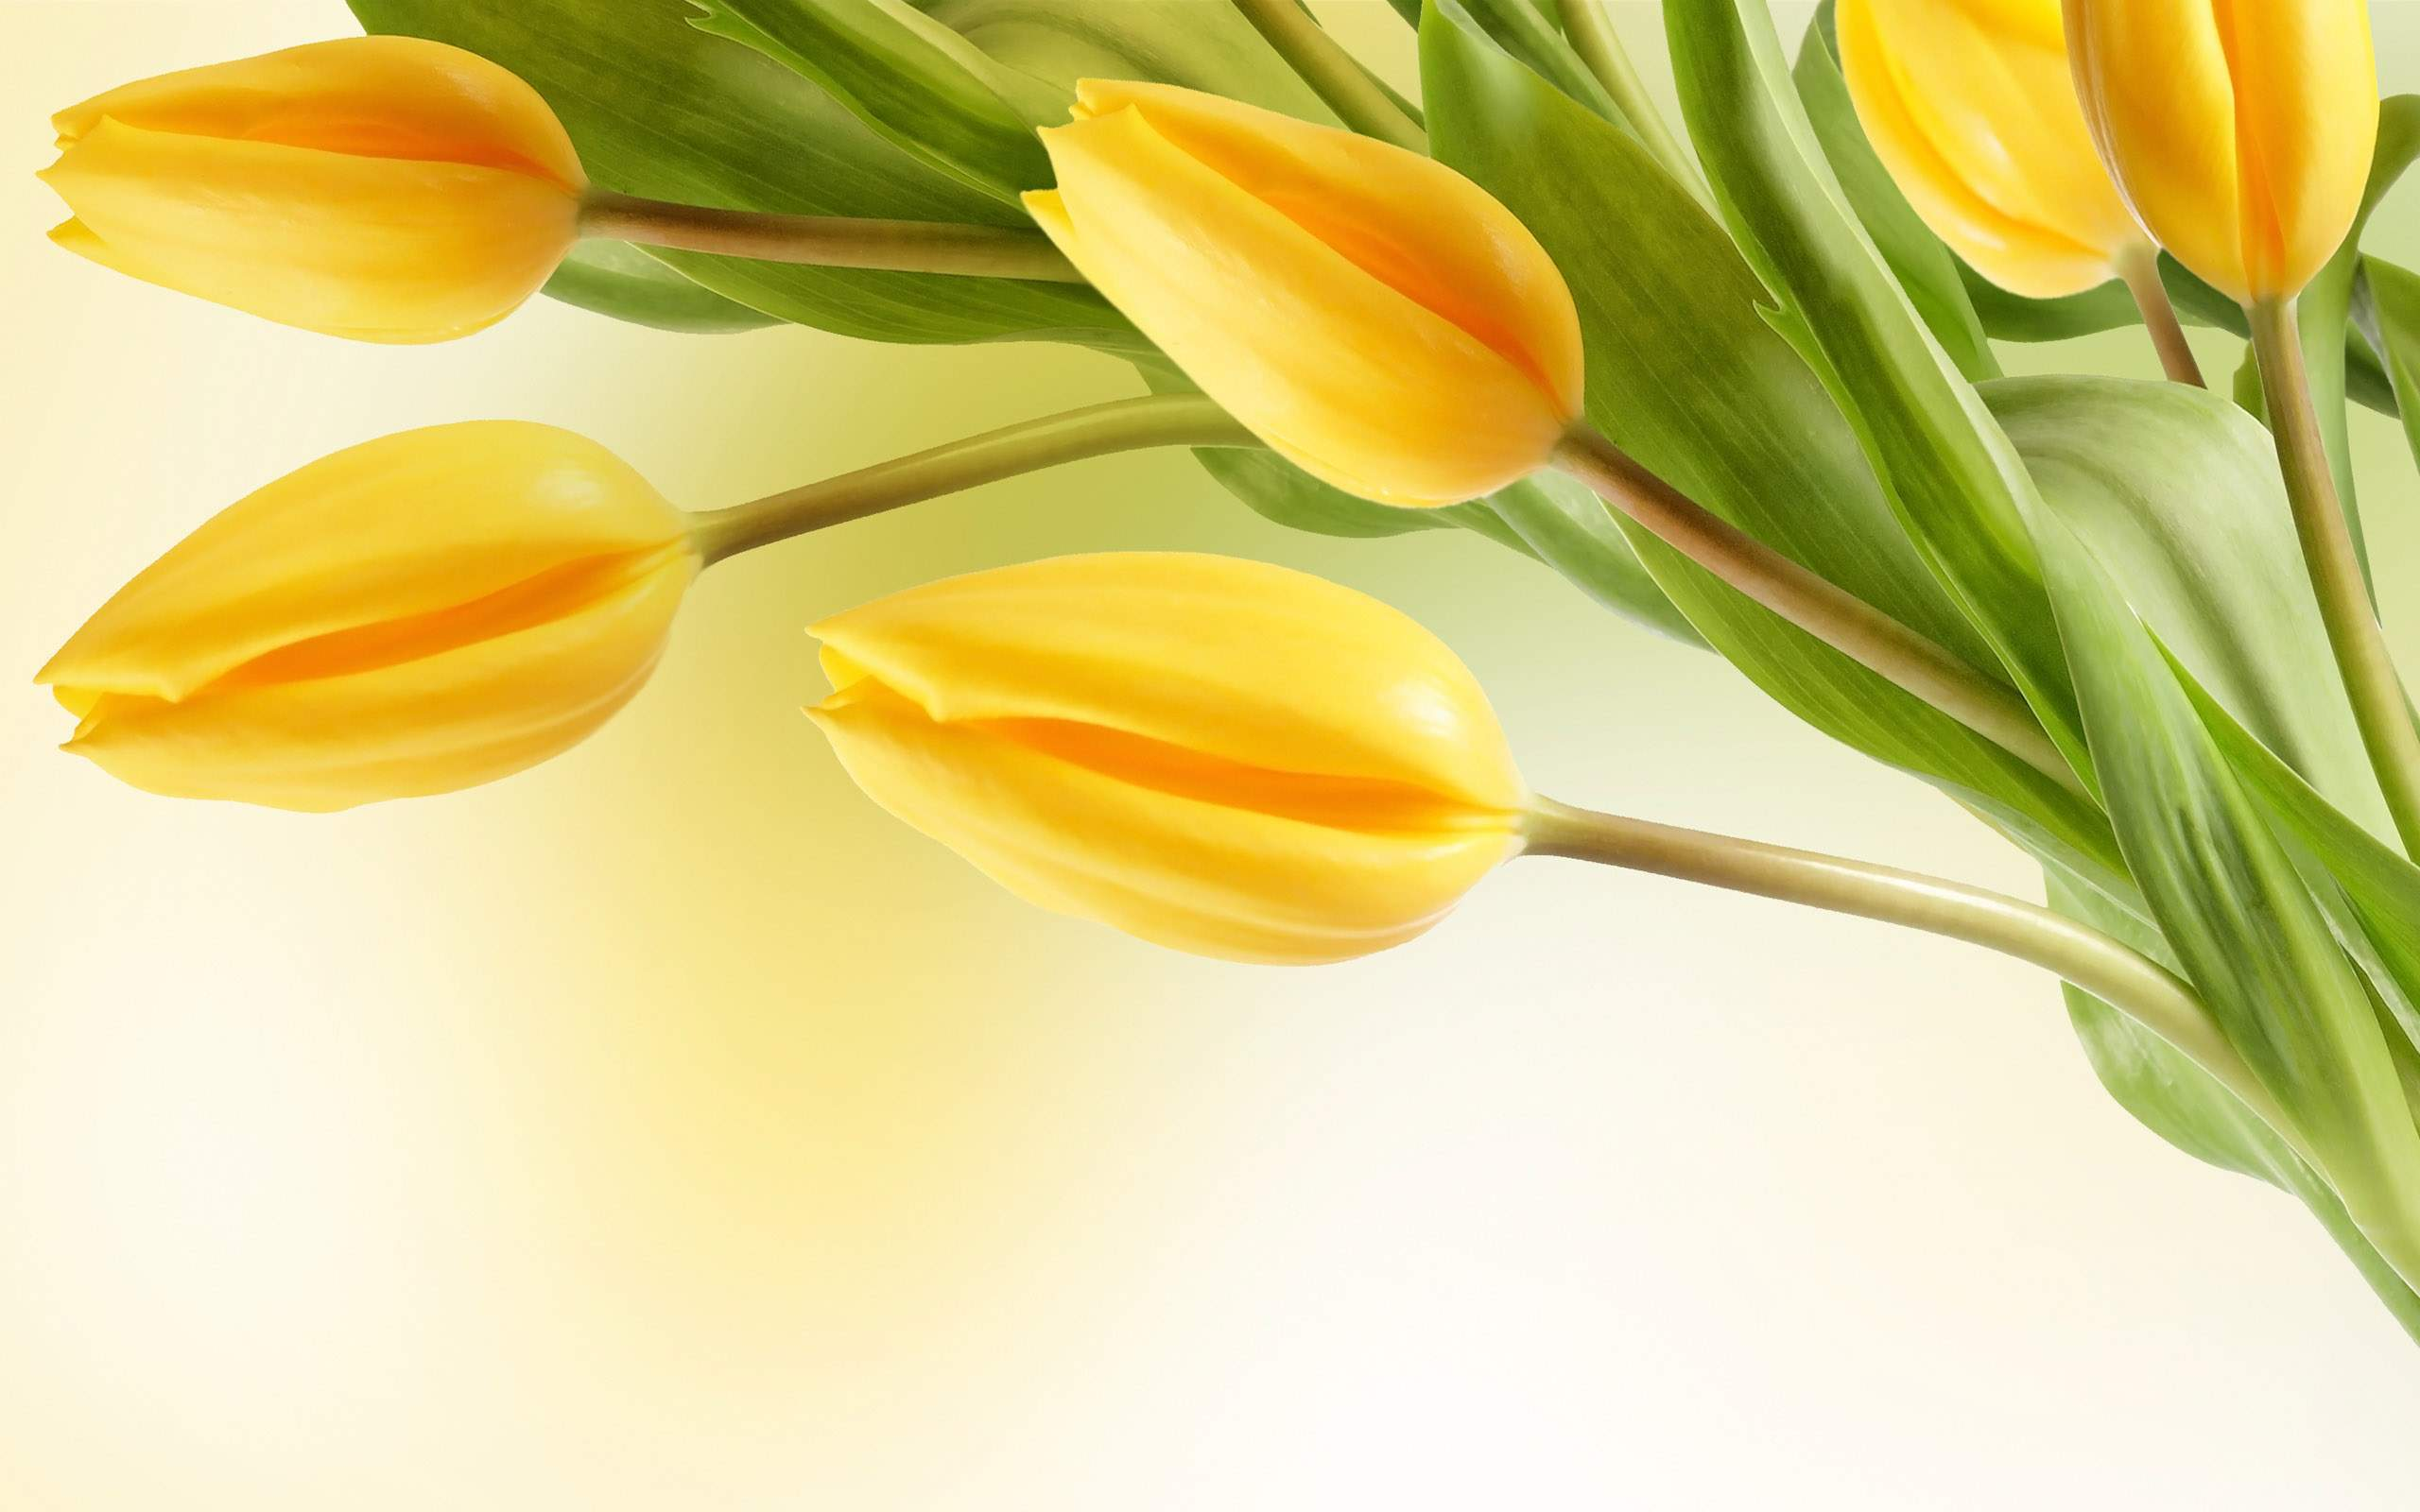 yellow mountain flowers wallpaper yellow tulip flower wallpaper-3